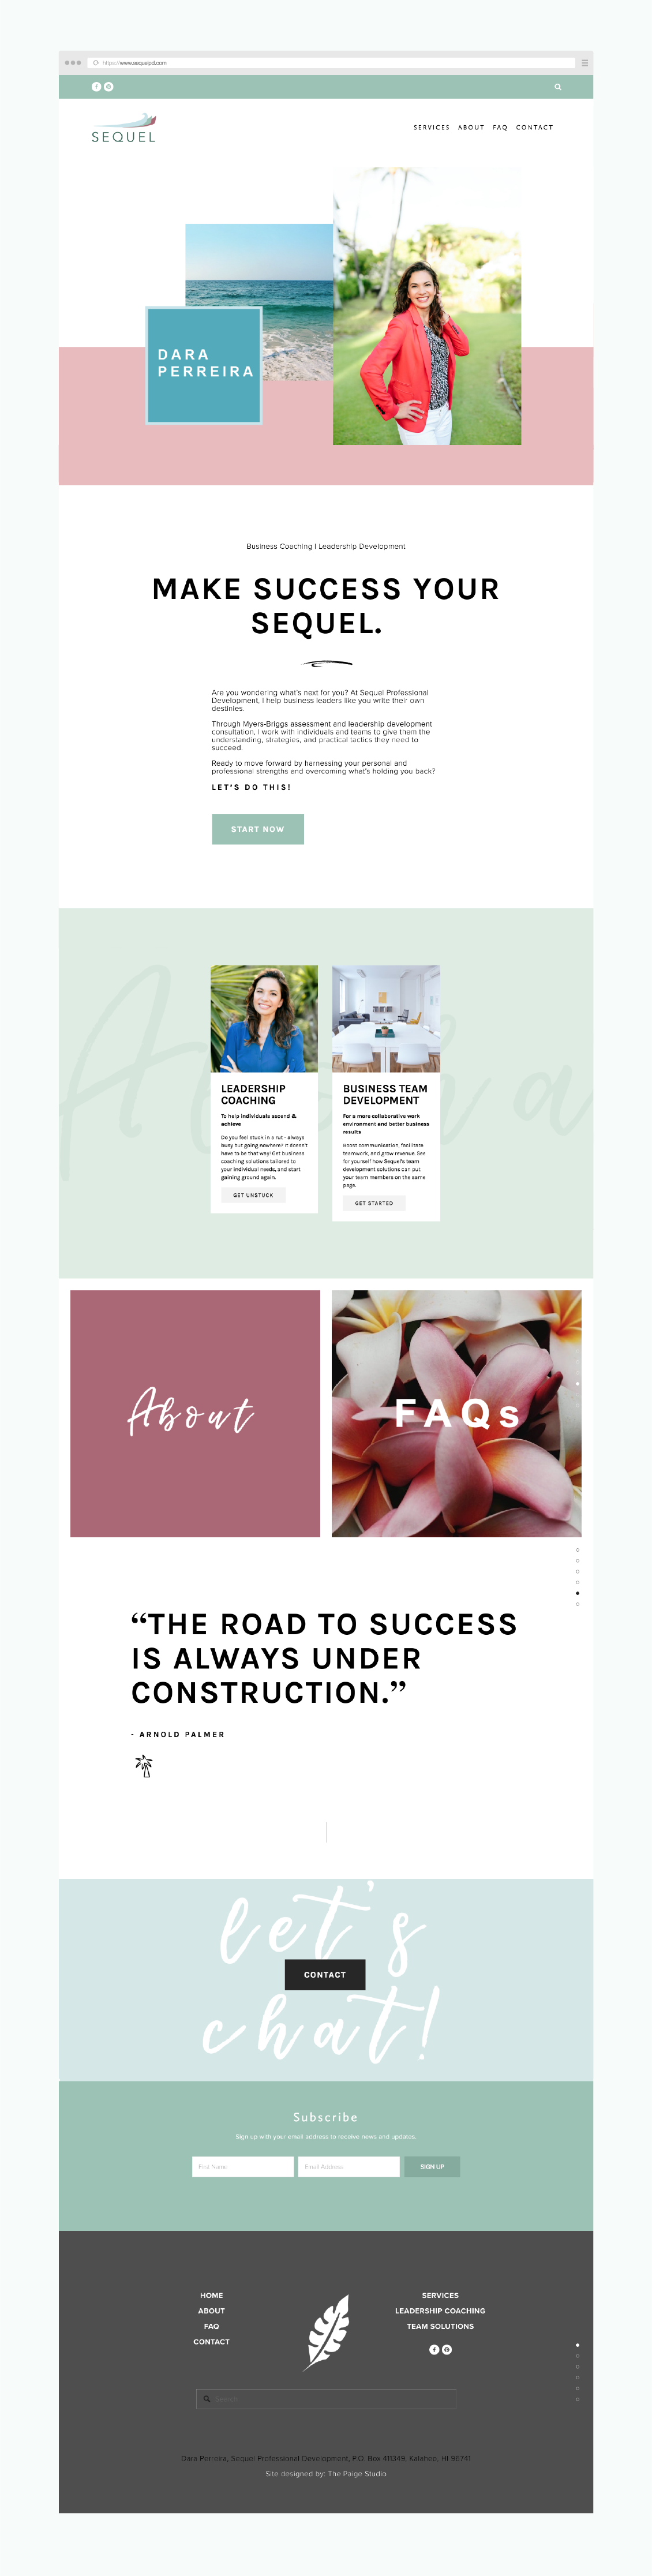 2017 Website Design Inspiration Creative Business Layout On Squarespace The Paige Studio